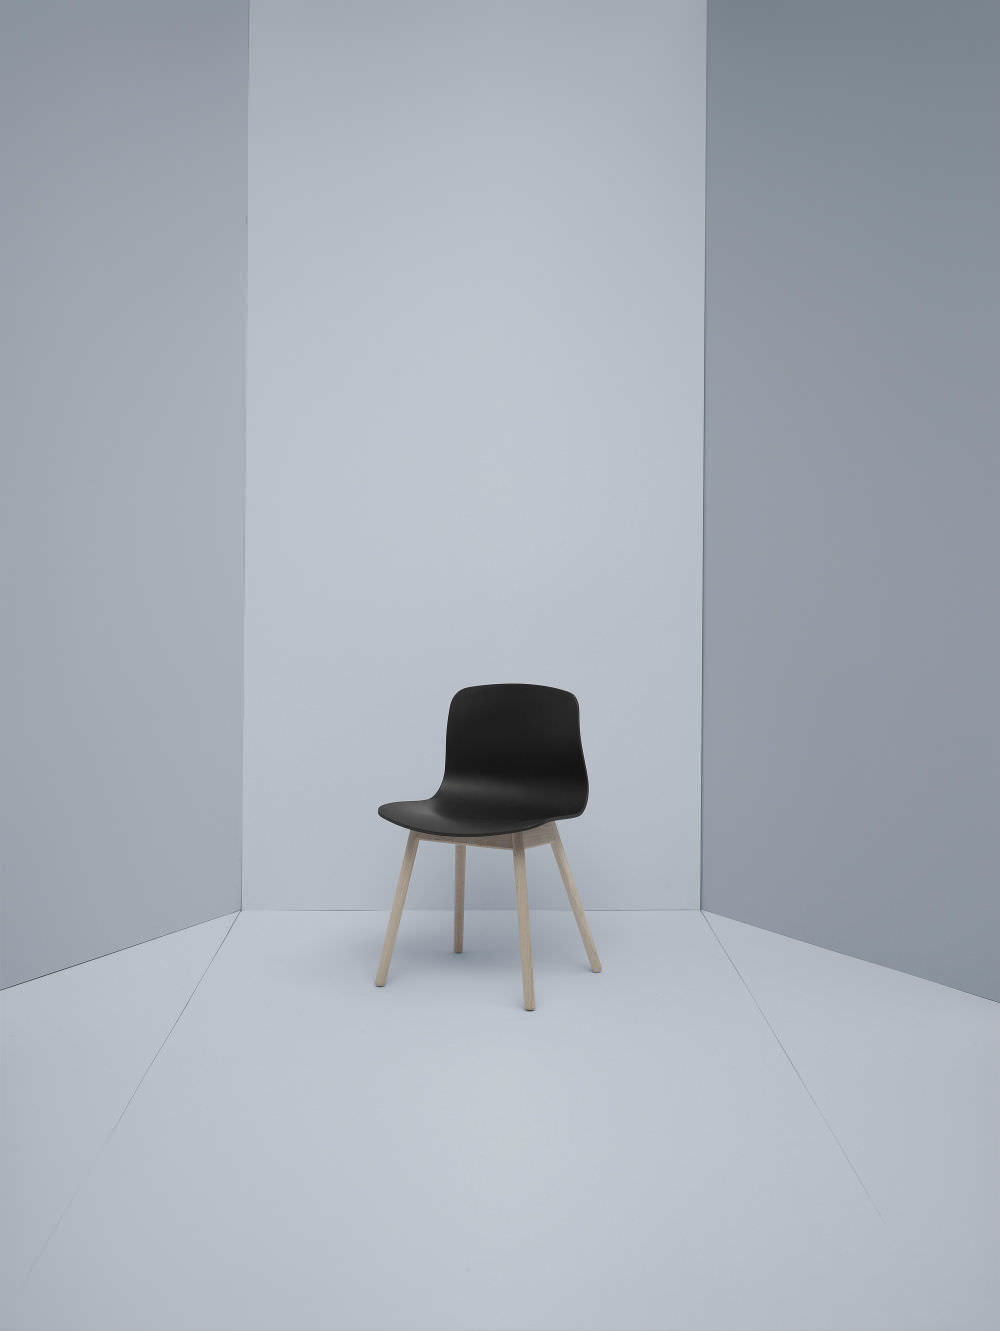 office chair conference dining scandinavian design aac22. upholstered conference chair polypropylene aac12 aac13 by hee welling hay as office dining scandinavian design aac22 i